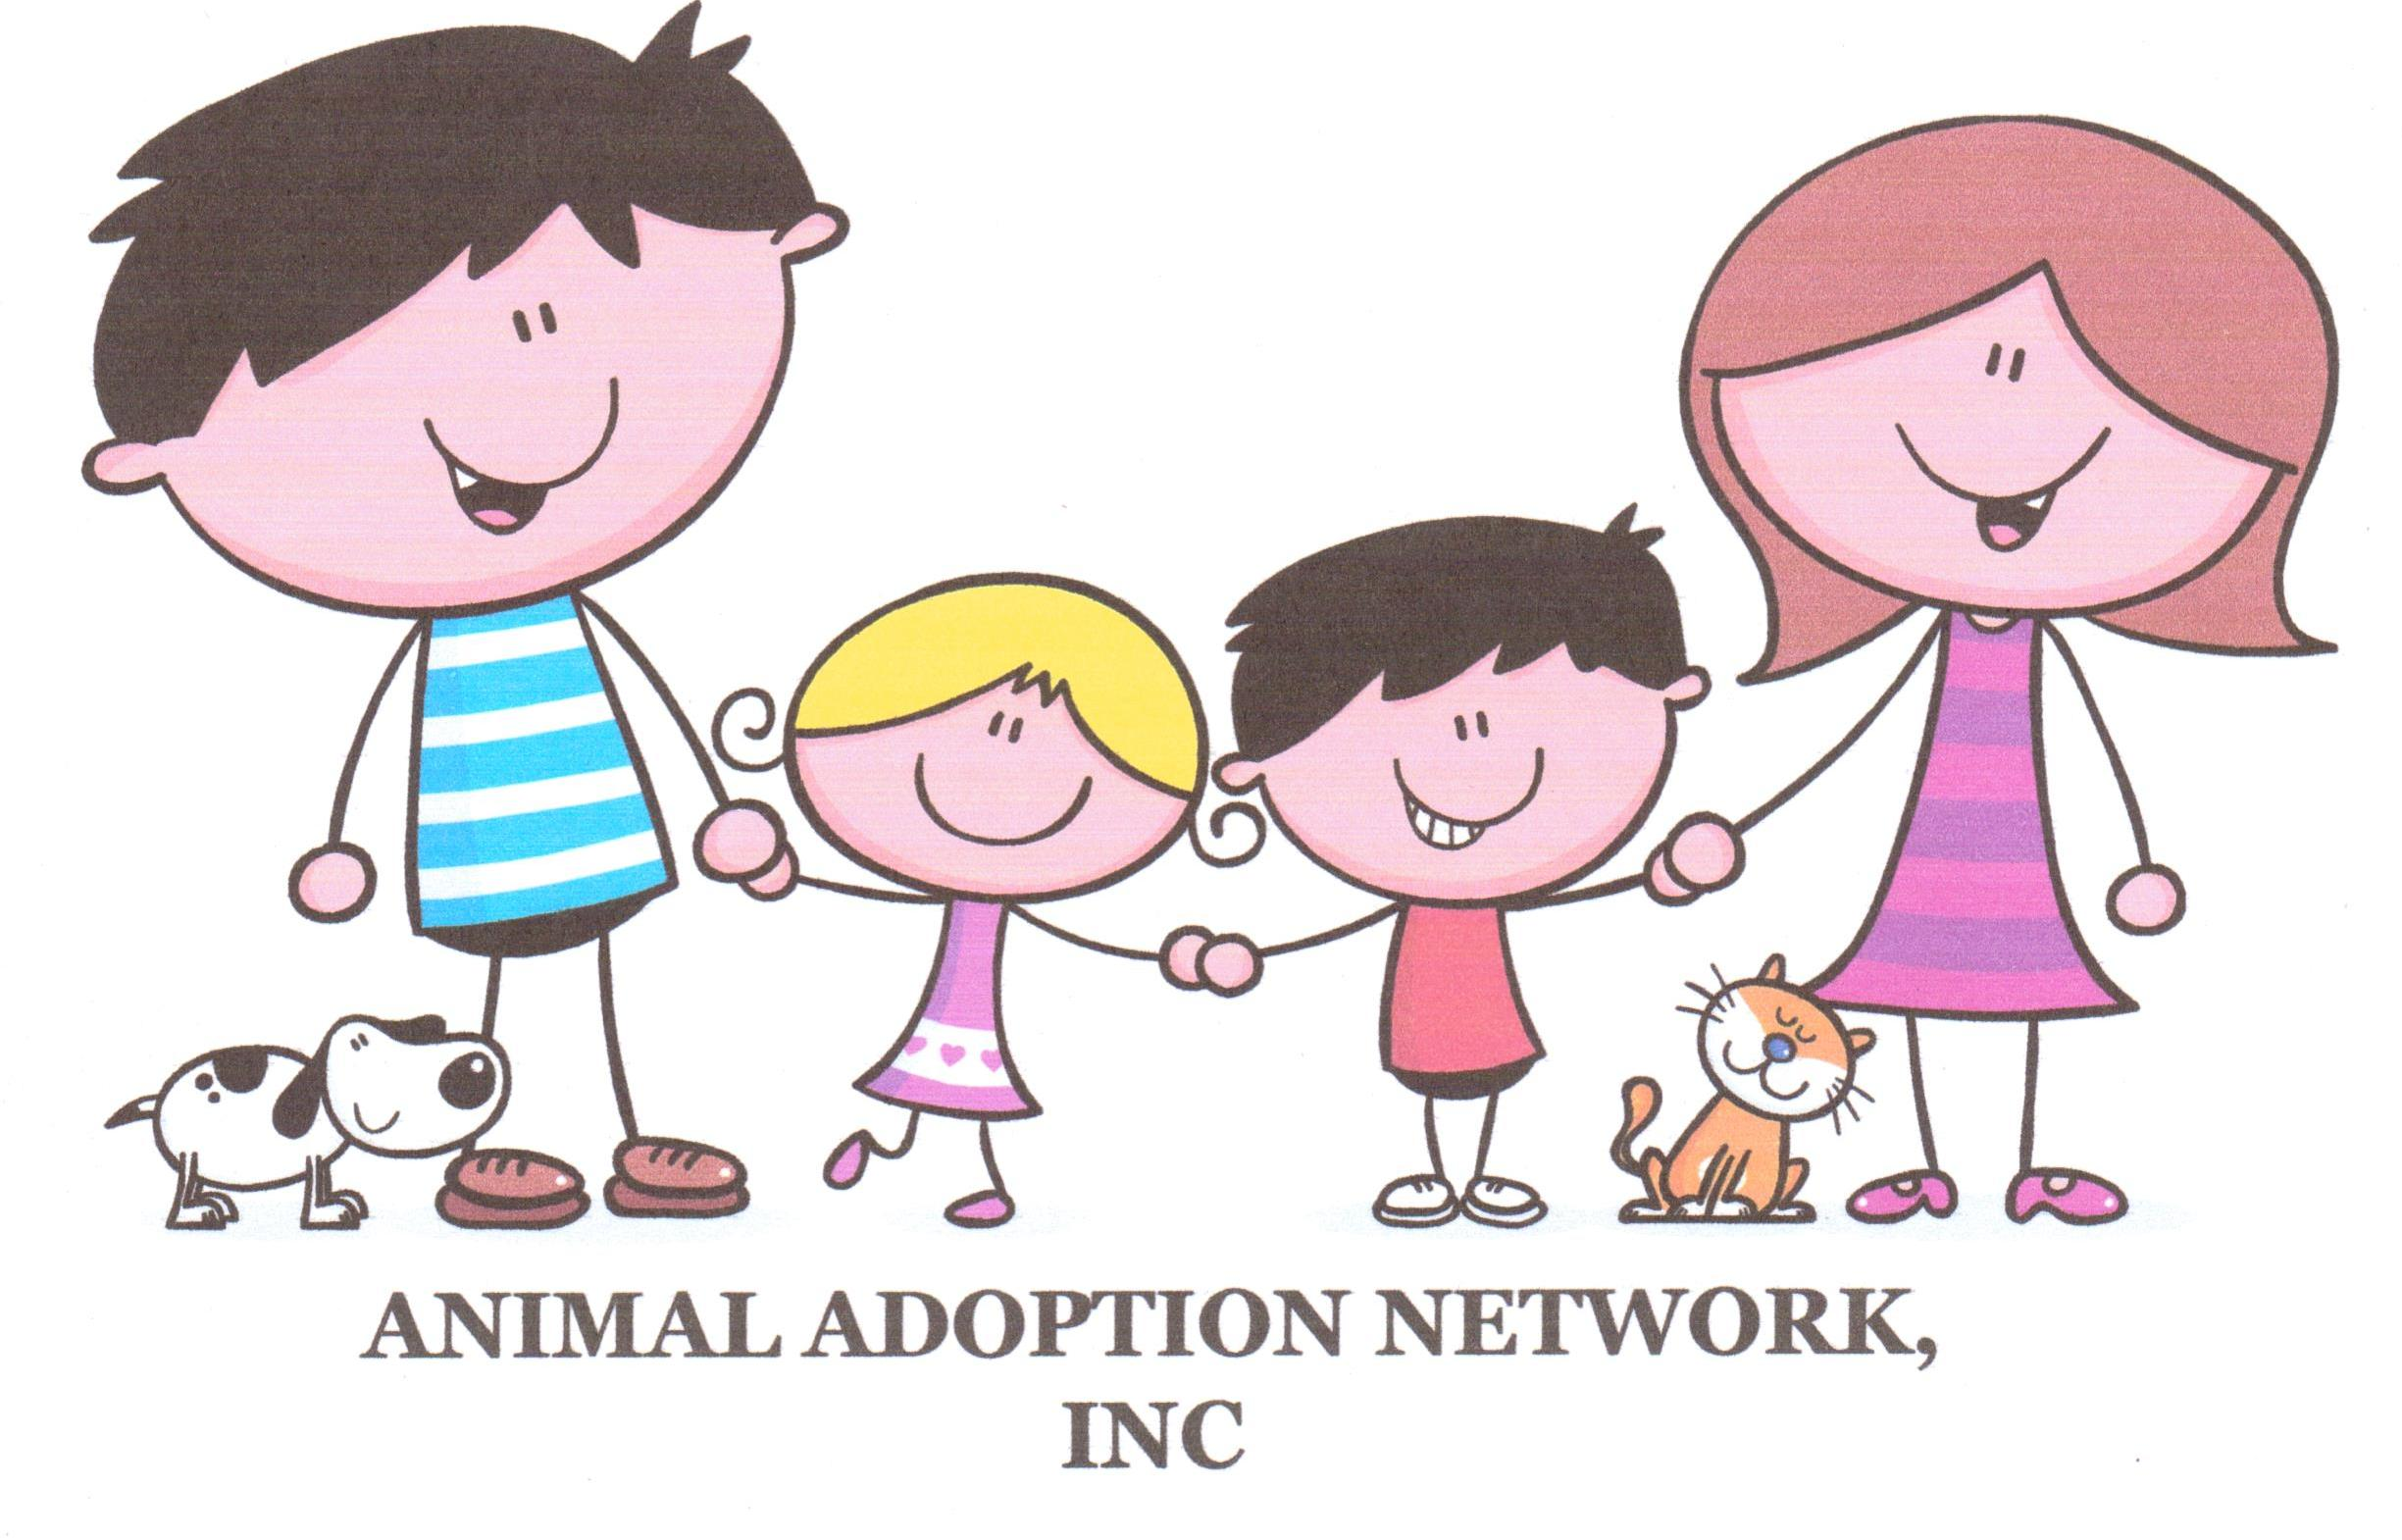 Animal Adoption Network, Inc.